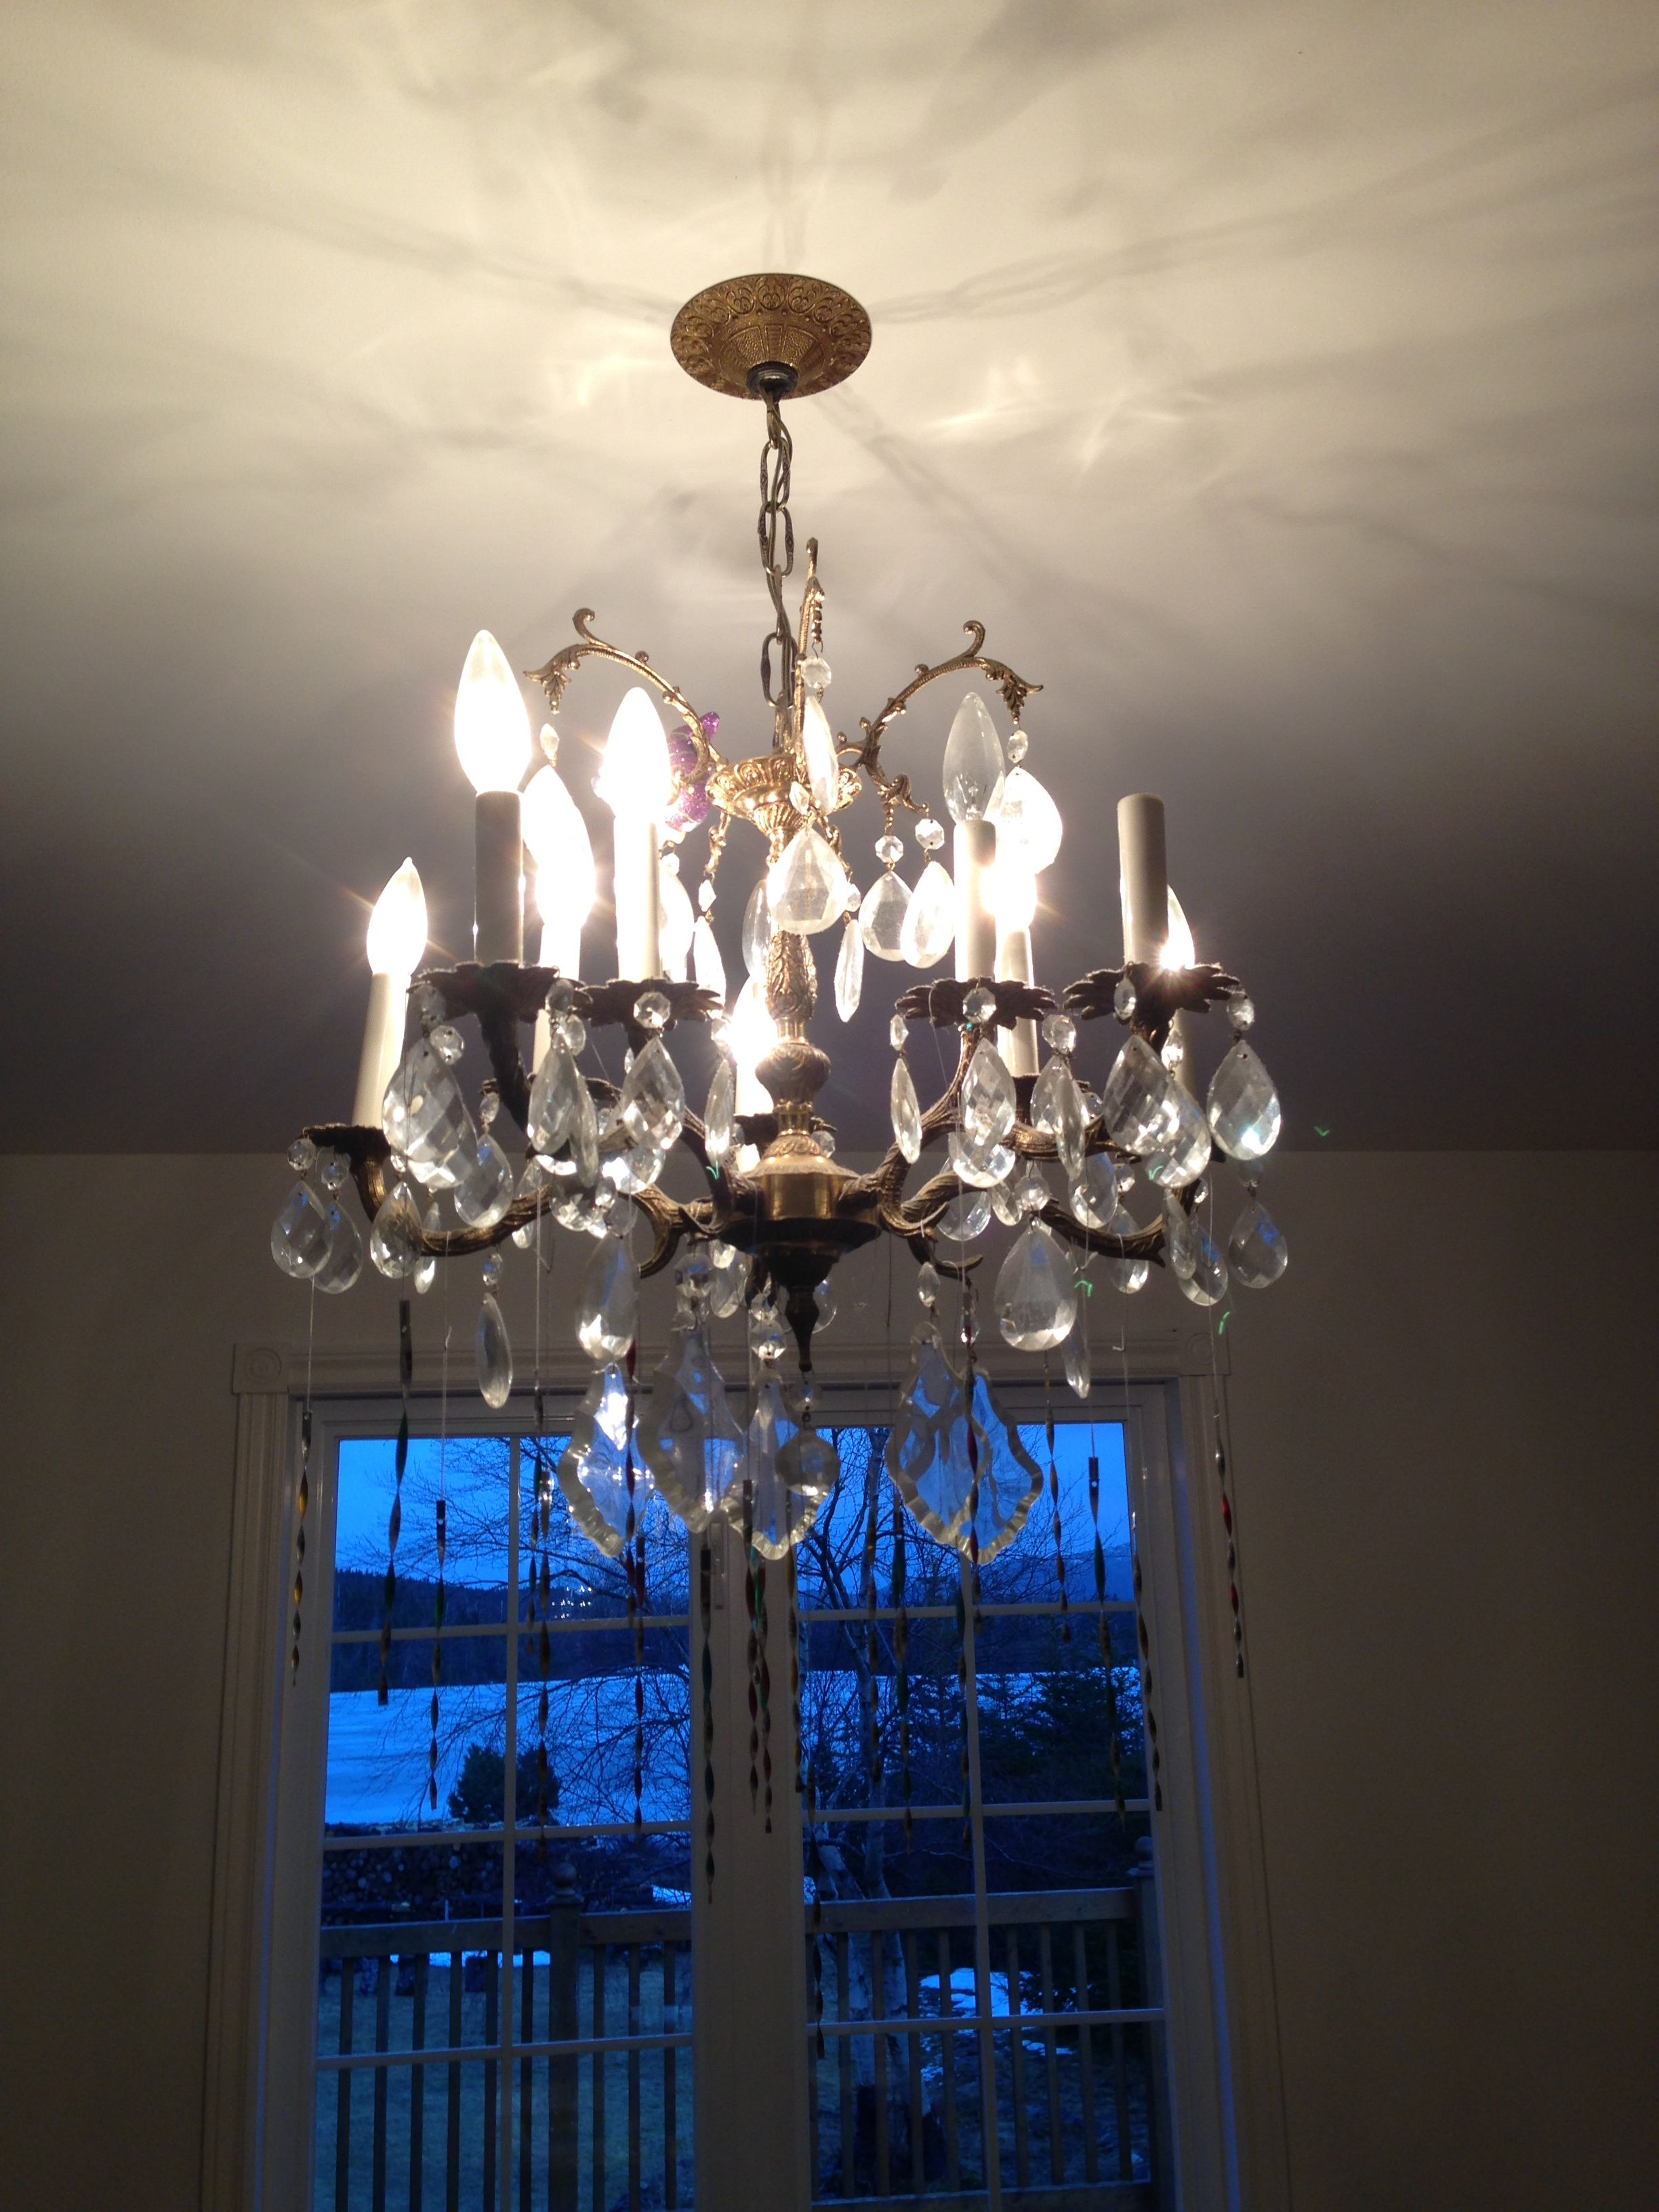 1 OUTDATED DINING ROOM CHANDELIER MAKEOVER BEFORE Our old brass